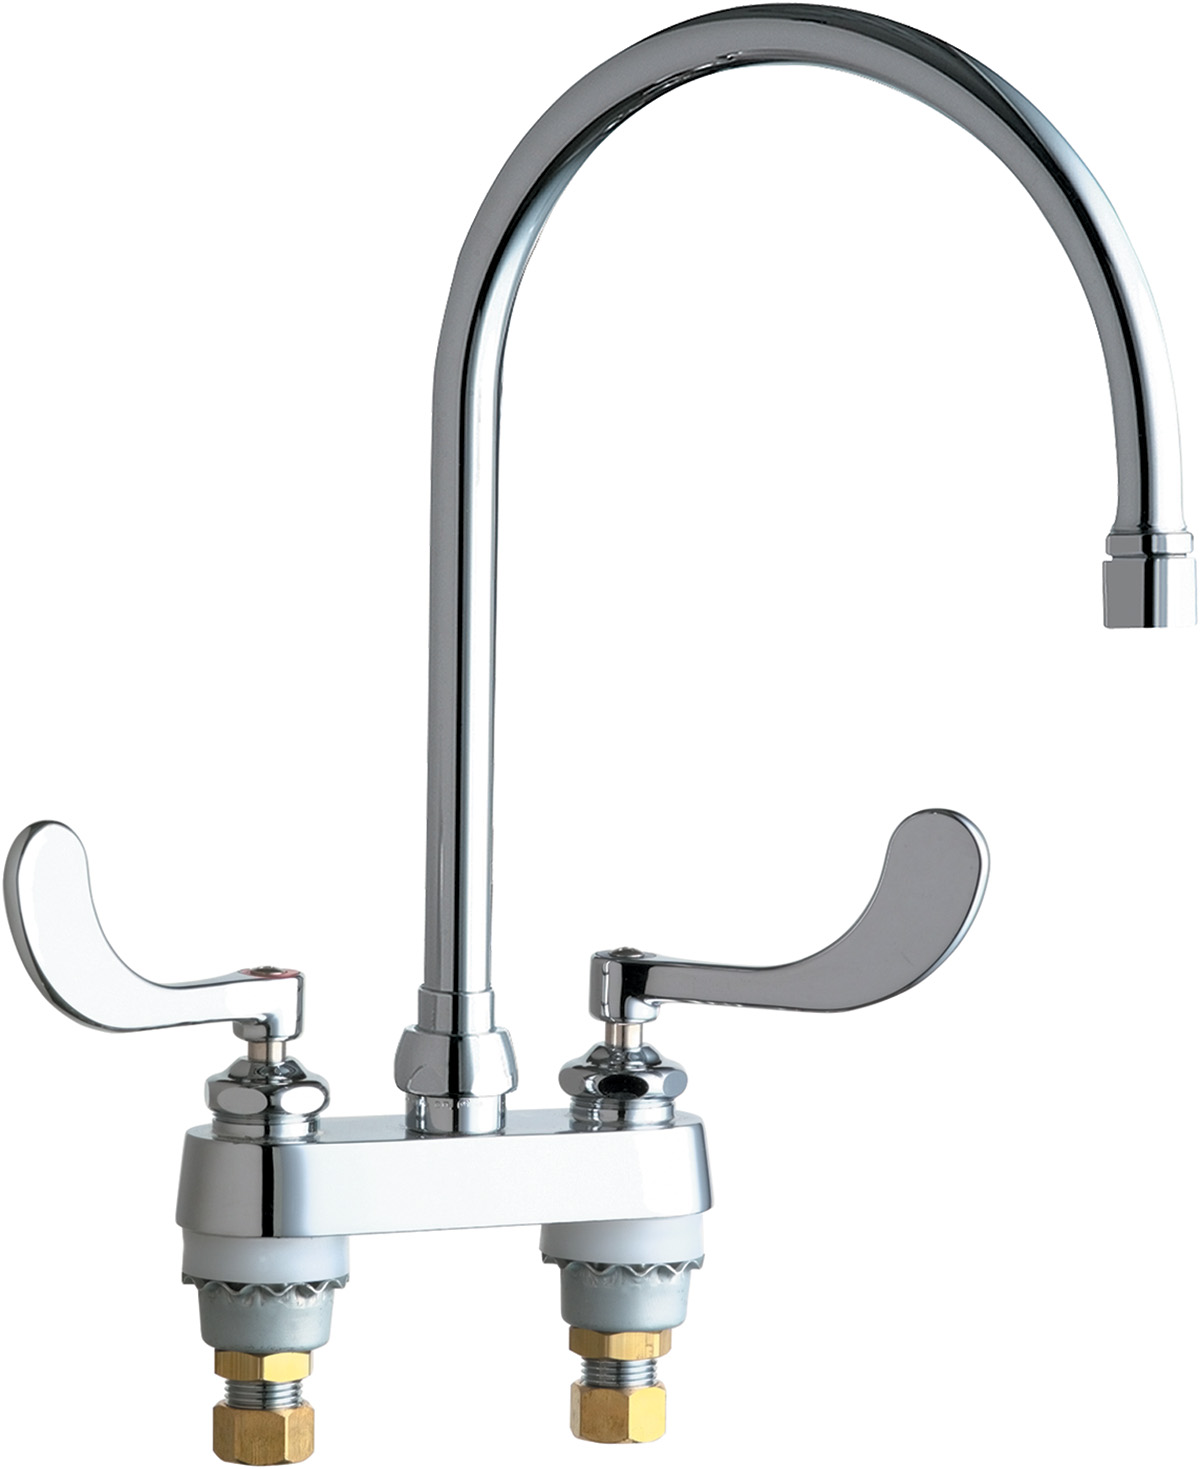 chicago faucet installation instructions